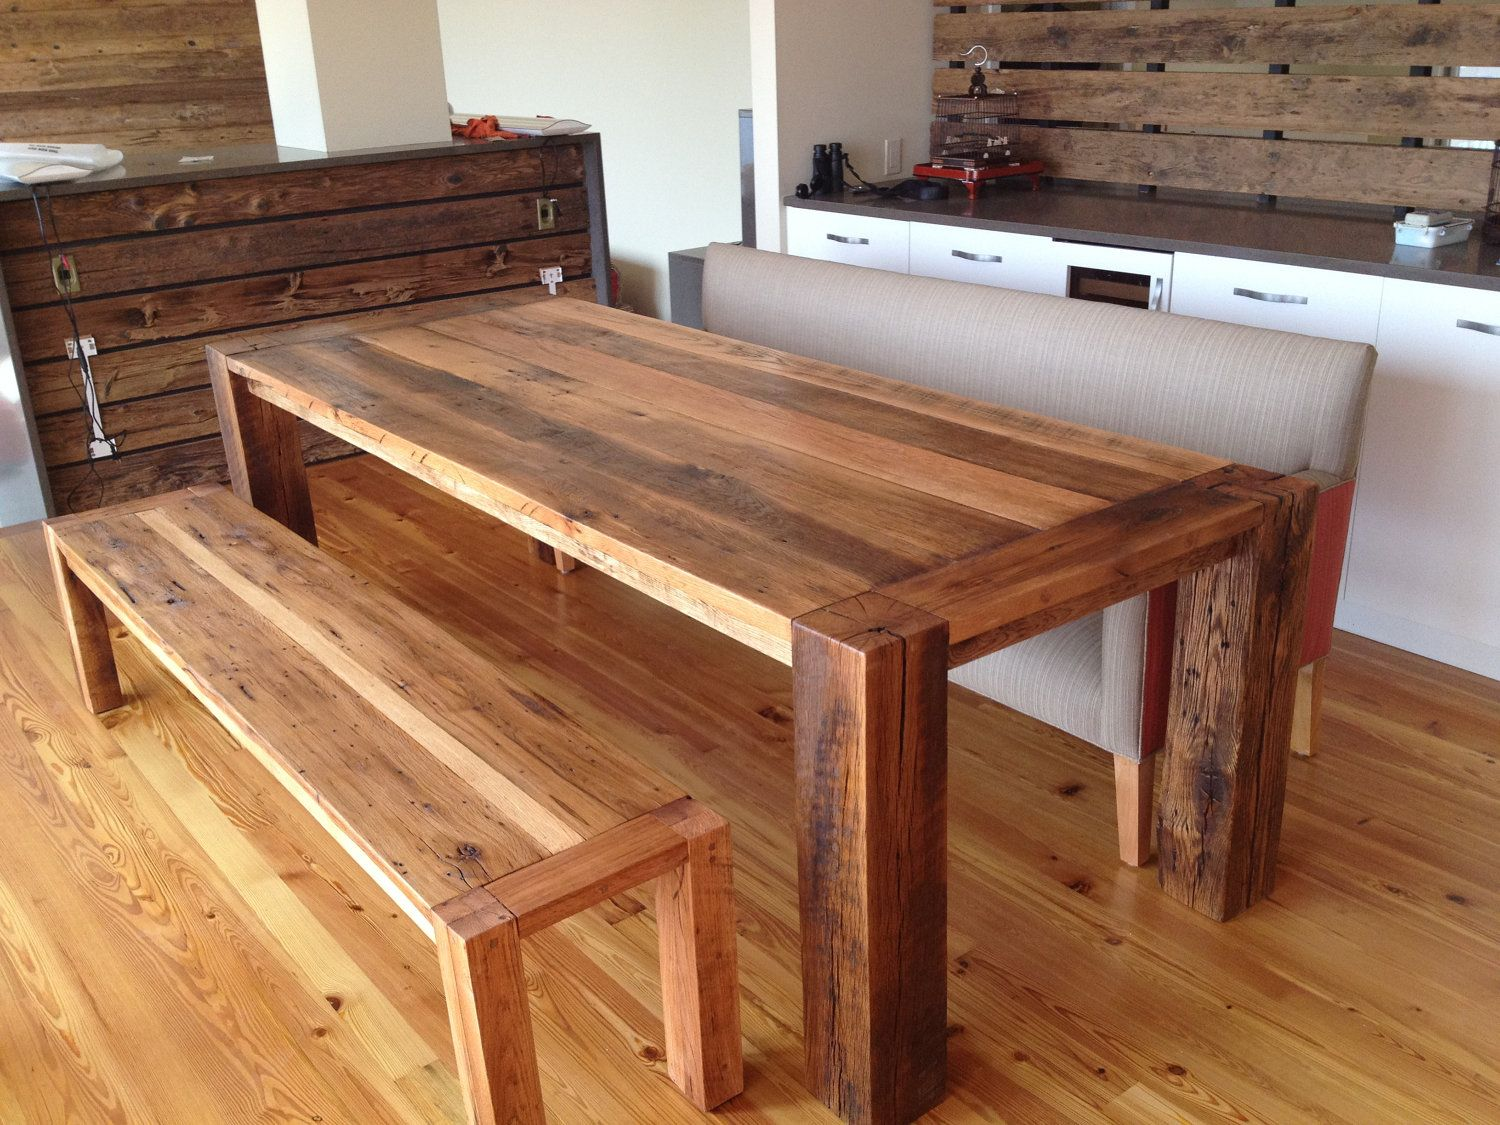 Custom for olivia and george corner spot dining table for Wooden table designs images